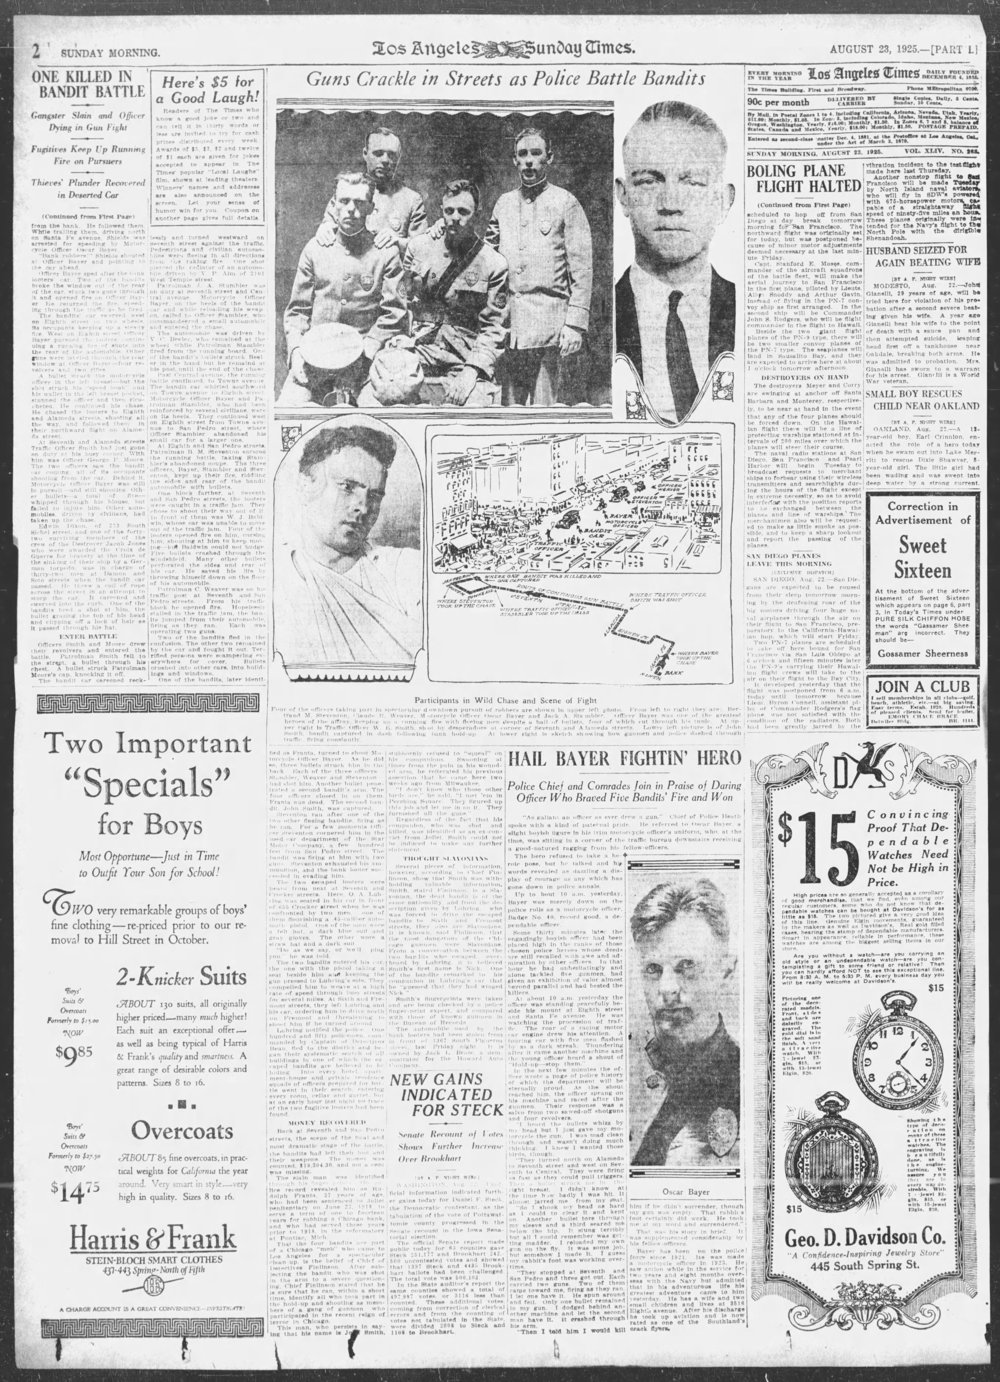 page 2 The_Los_Angeles_Times_Sun__Aug_23__1925_.jpg